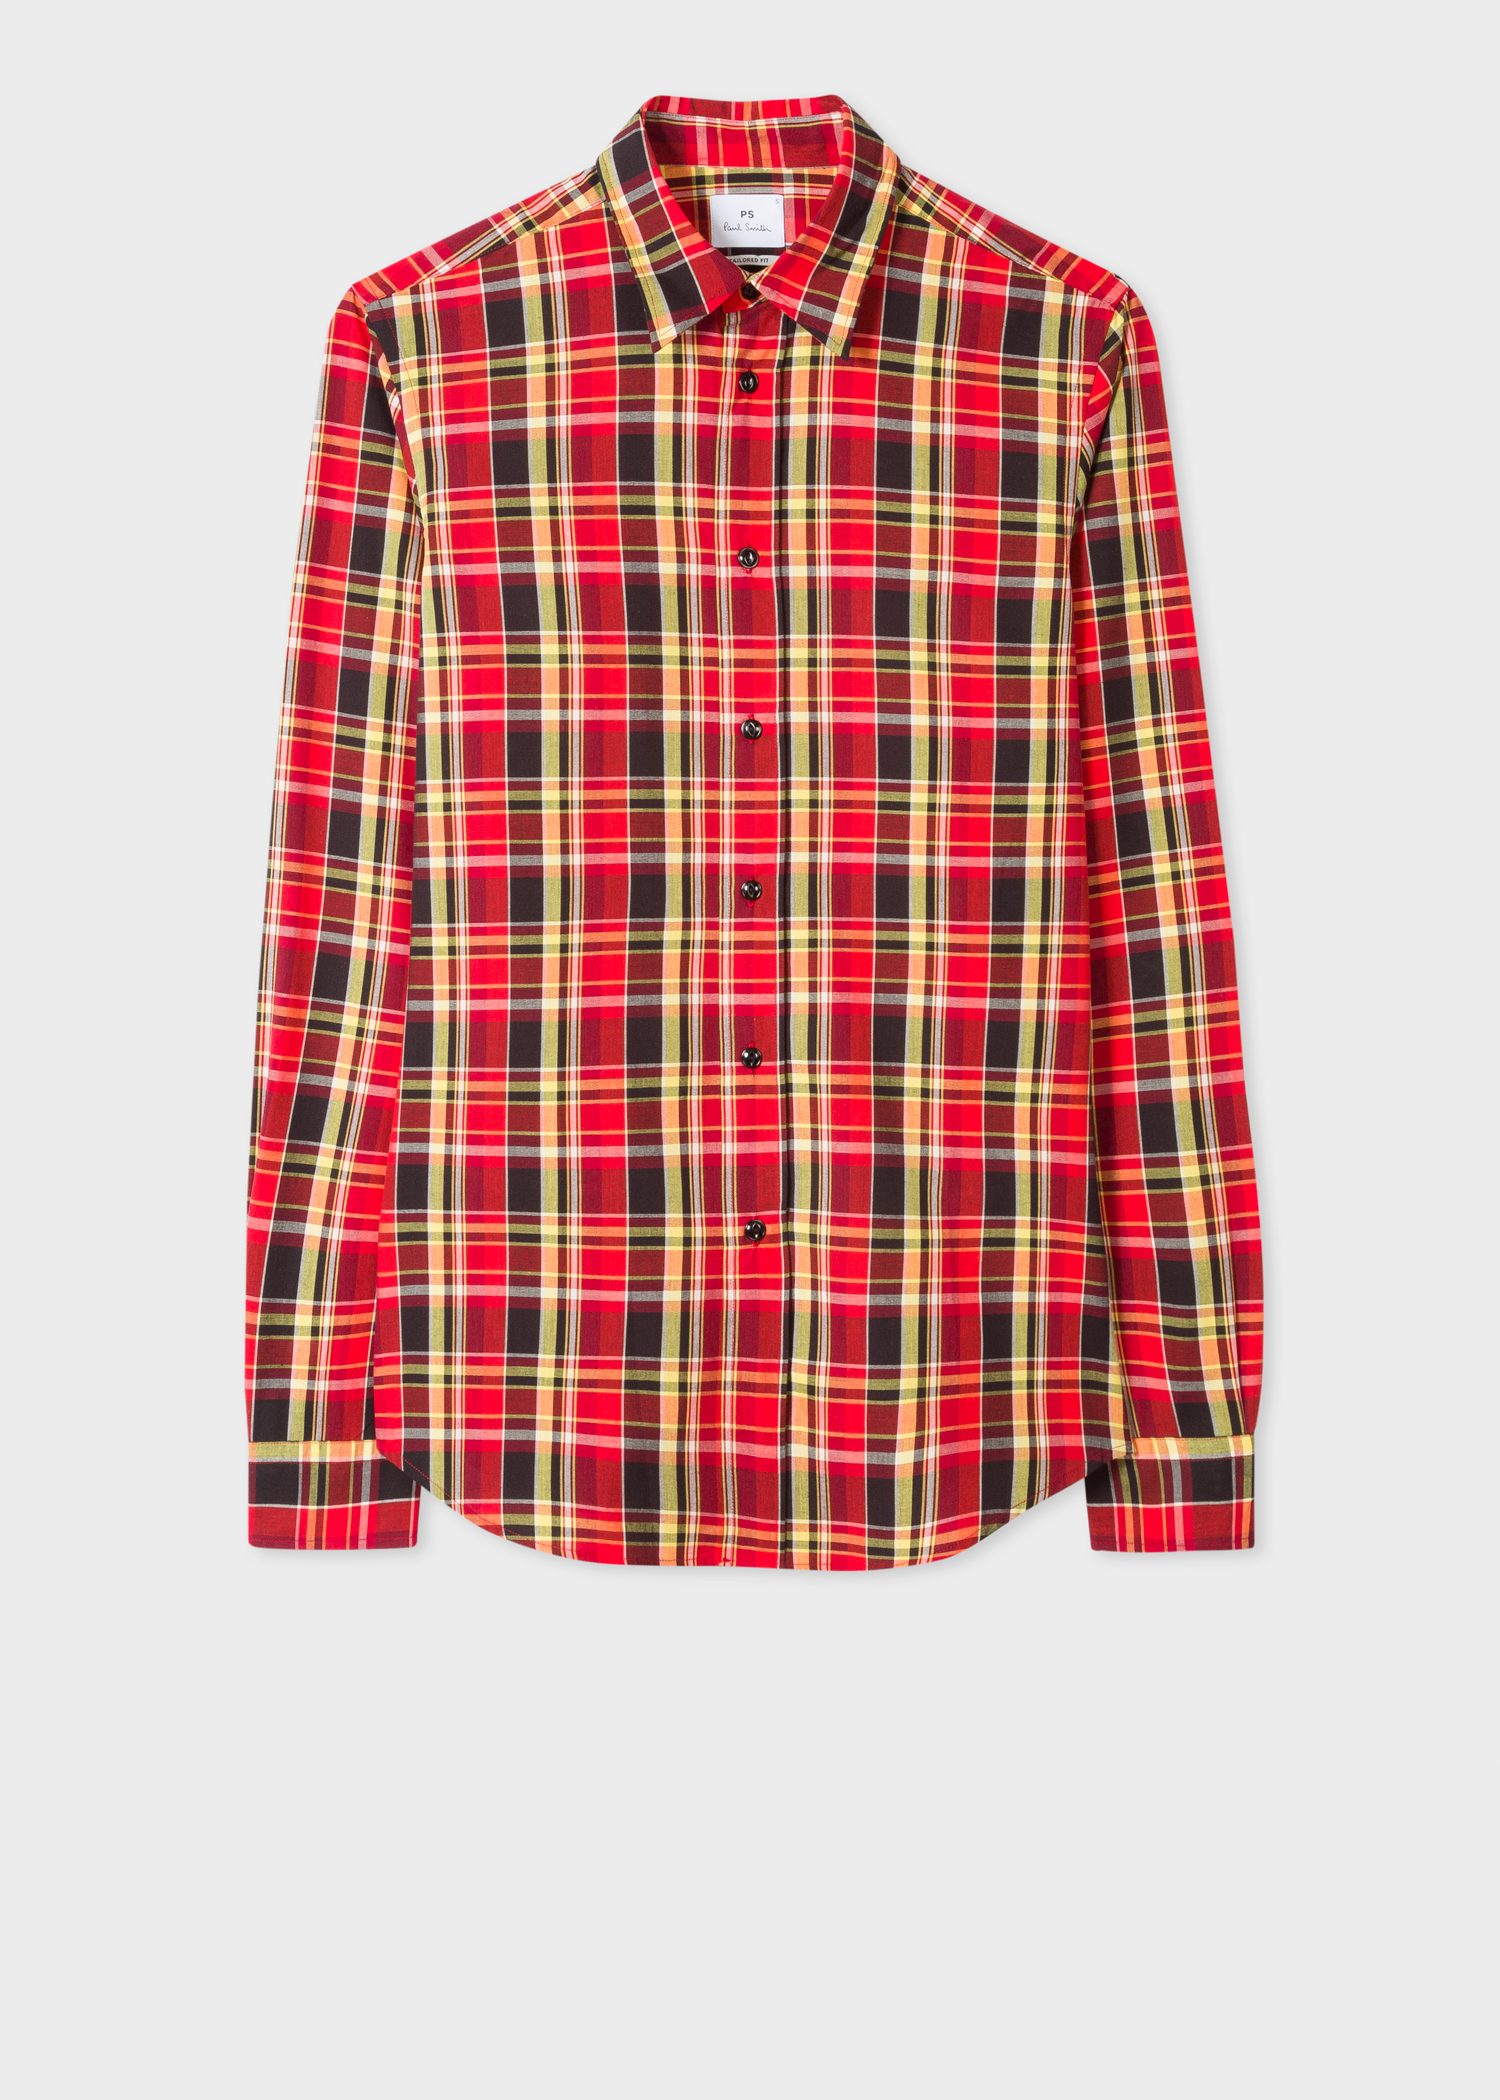 57d0022f5b3447 Front view - Men's Tailored-Fit Red And Yellow Check Cotton-Blend Shirt Paul